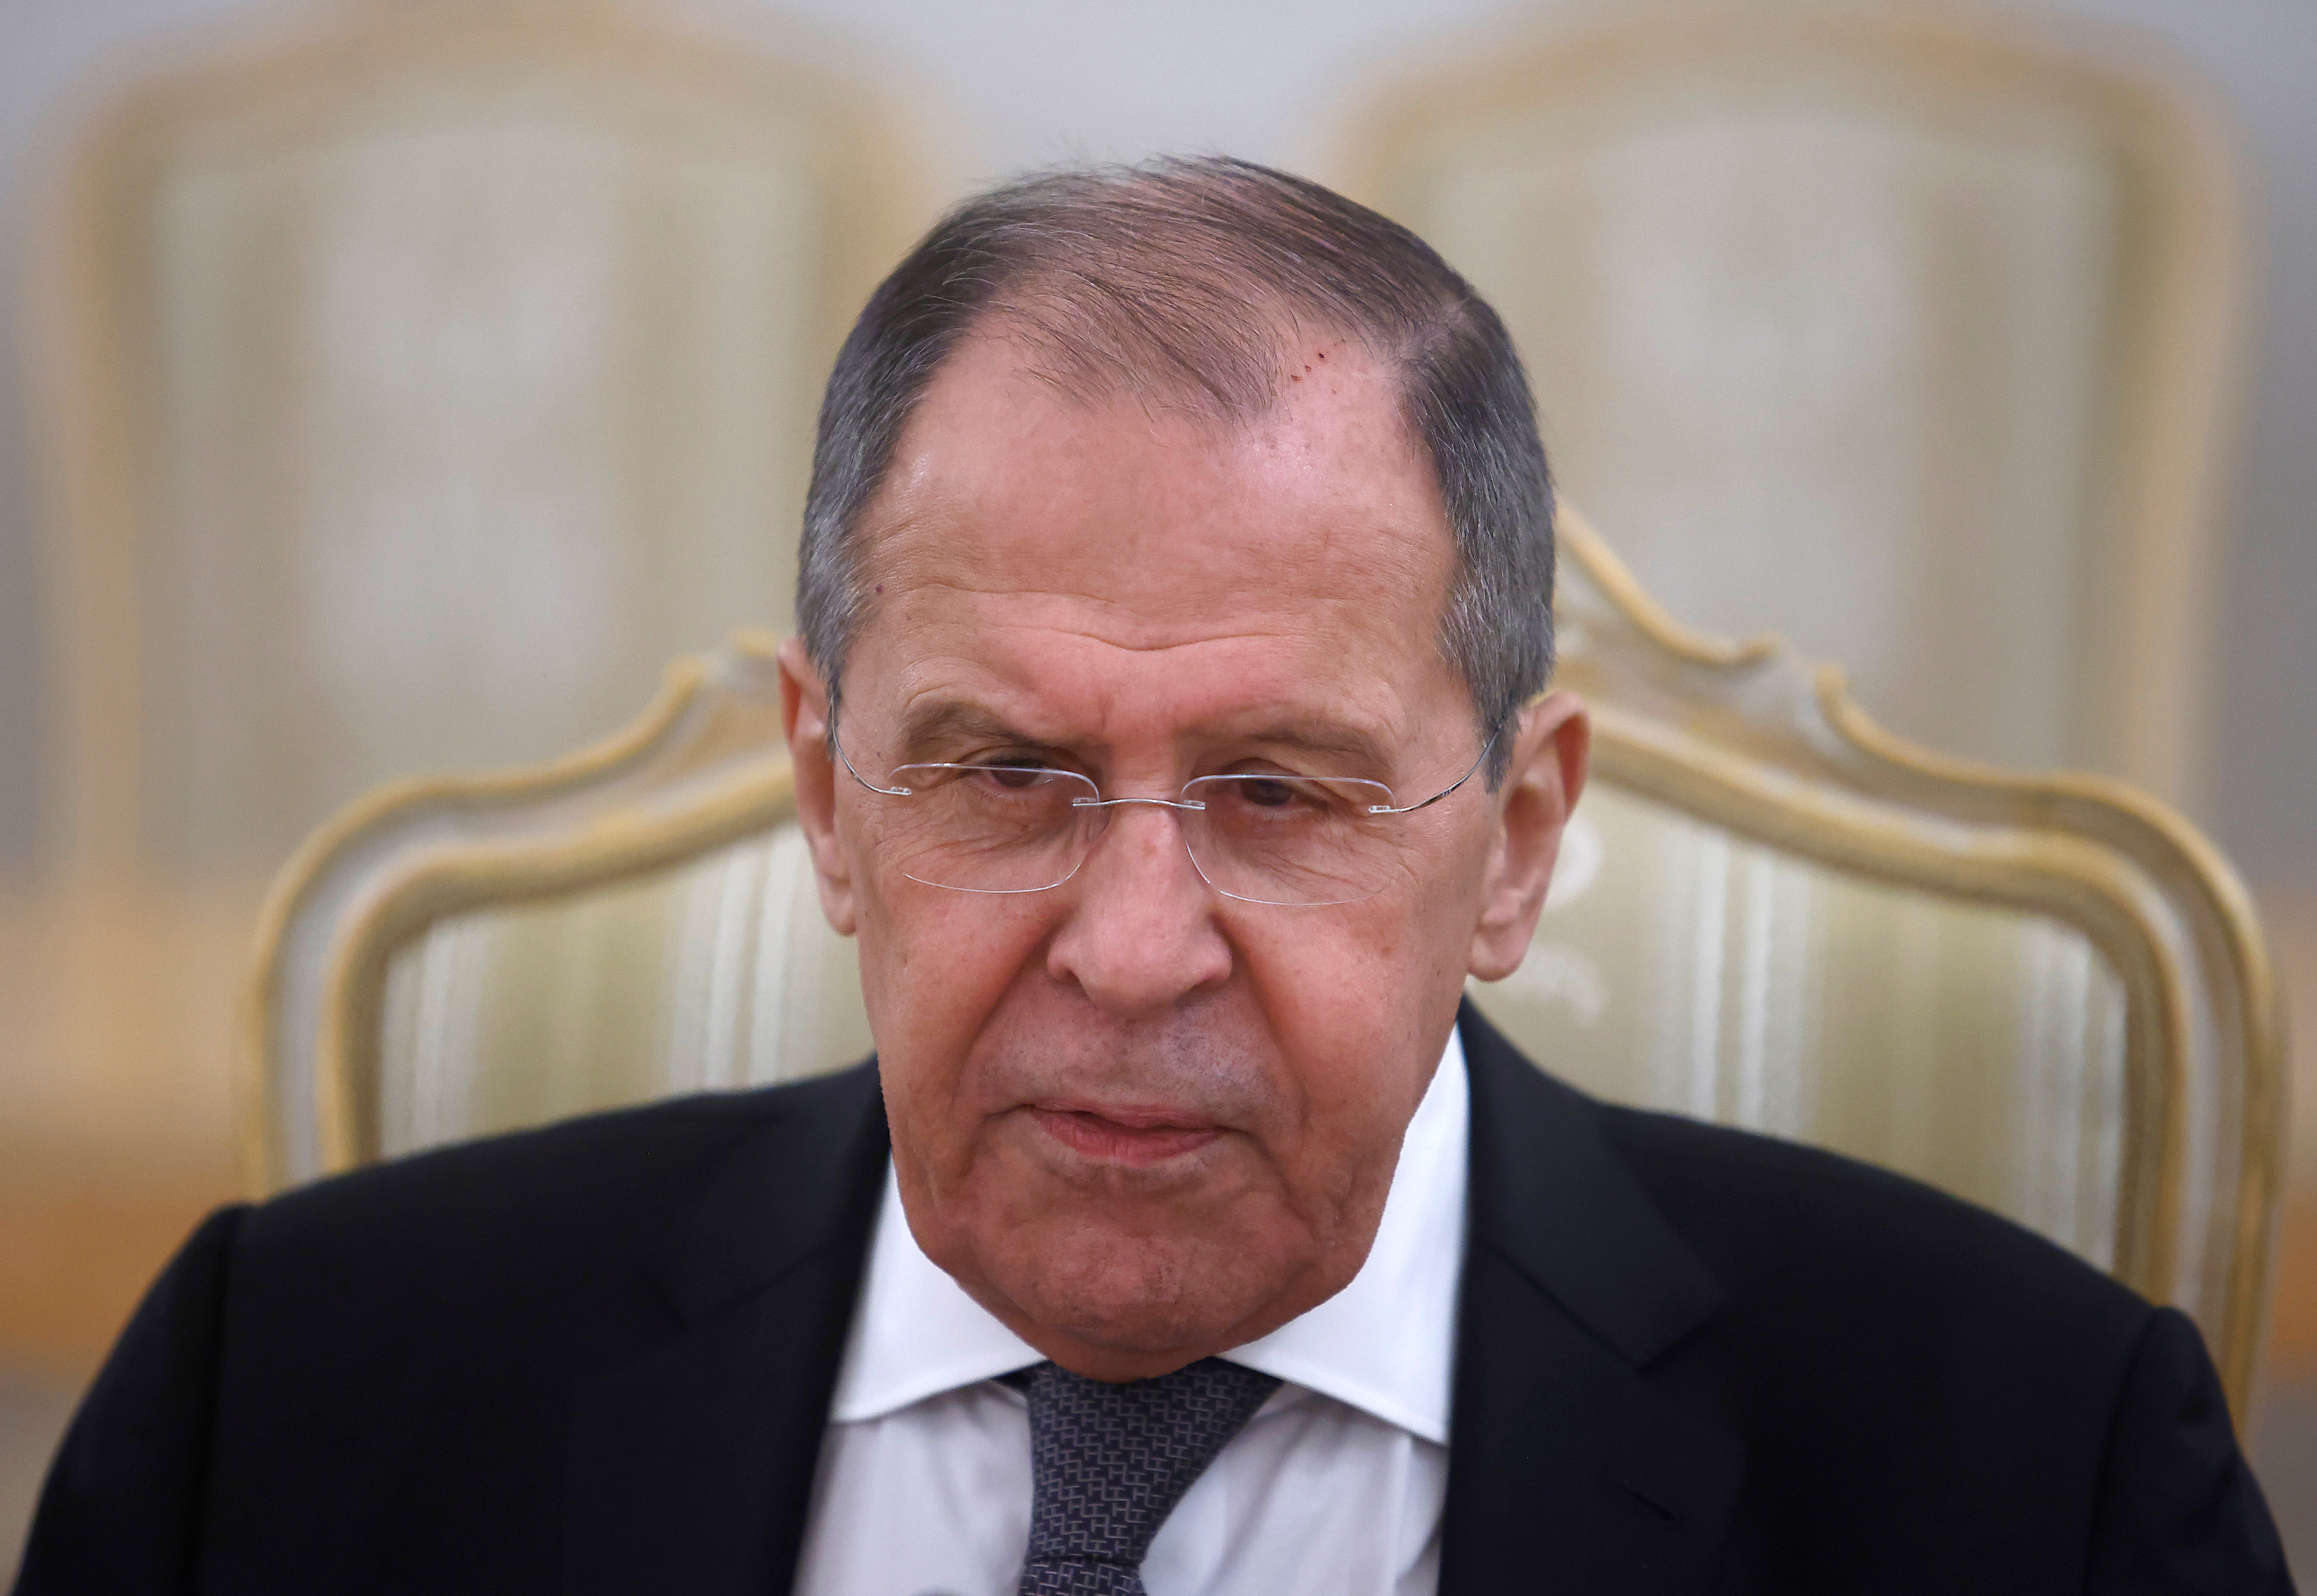 Russian Foreign Minister Sergei Lavrov attends a meeting with U.N. Secretary-General Antonio Guterres in Moscow, Russia May 12, 2021. REUTERS/Maxim Shemetov